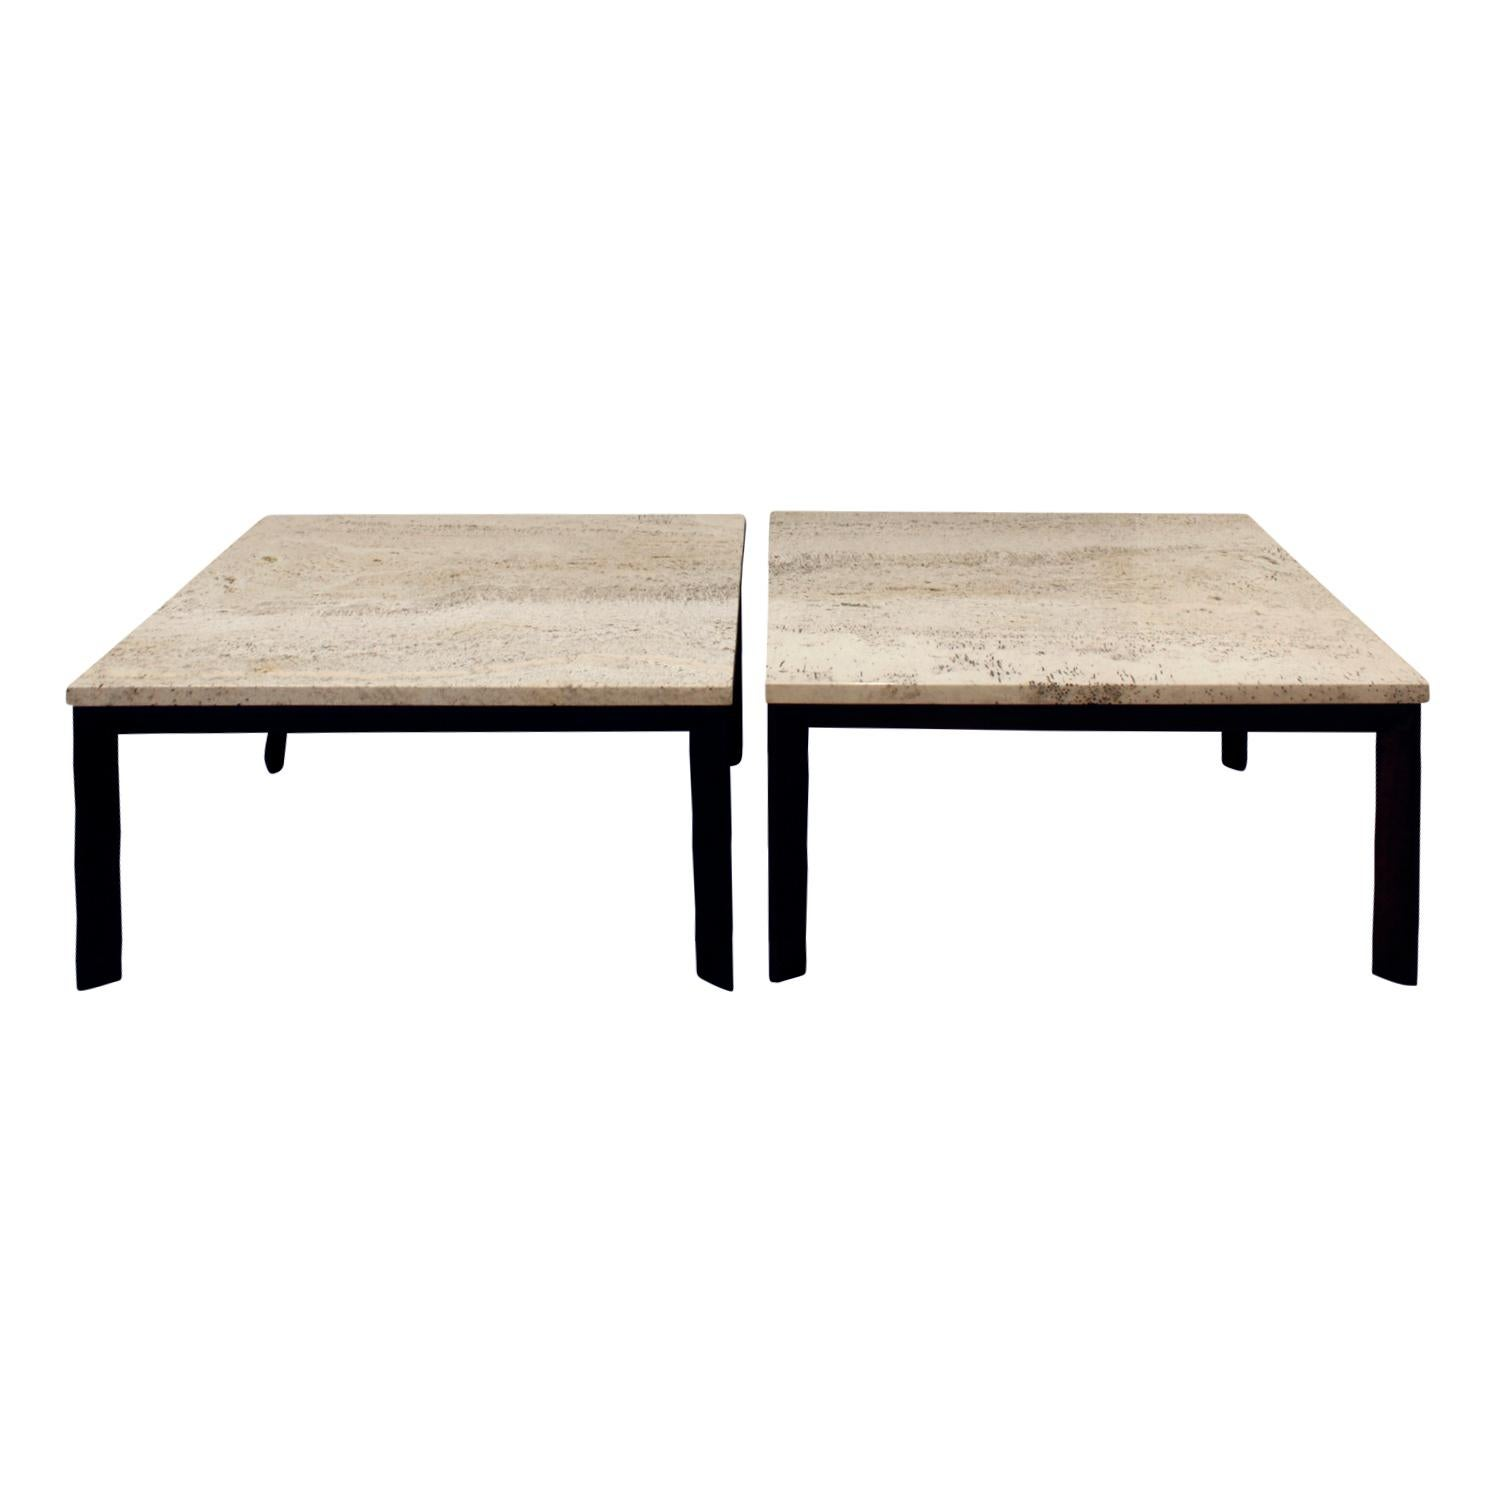 Pair of Angular Leg Coffee Tables with Travertine Tops, 1950s